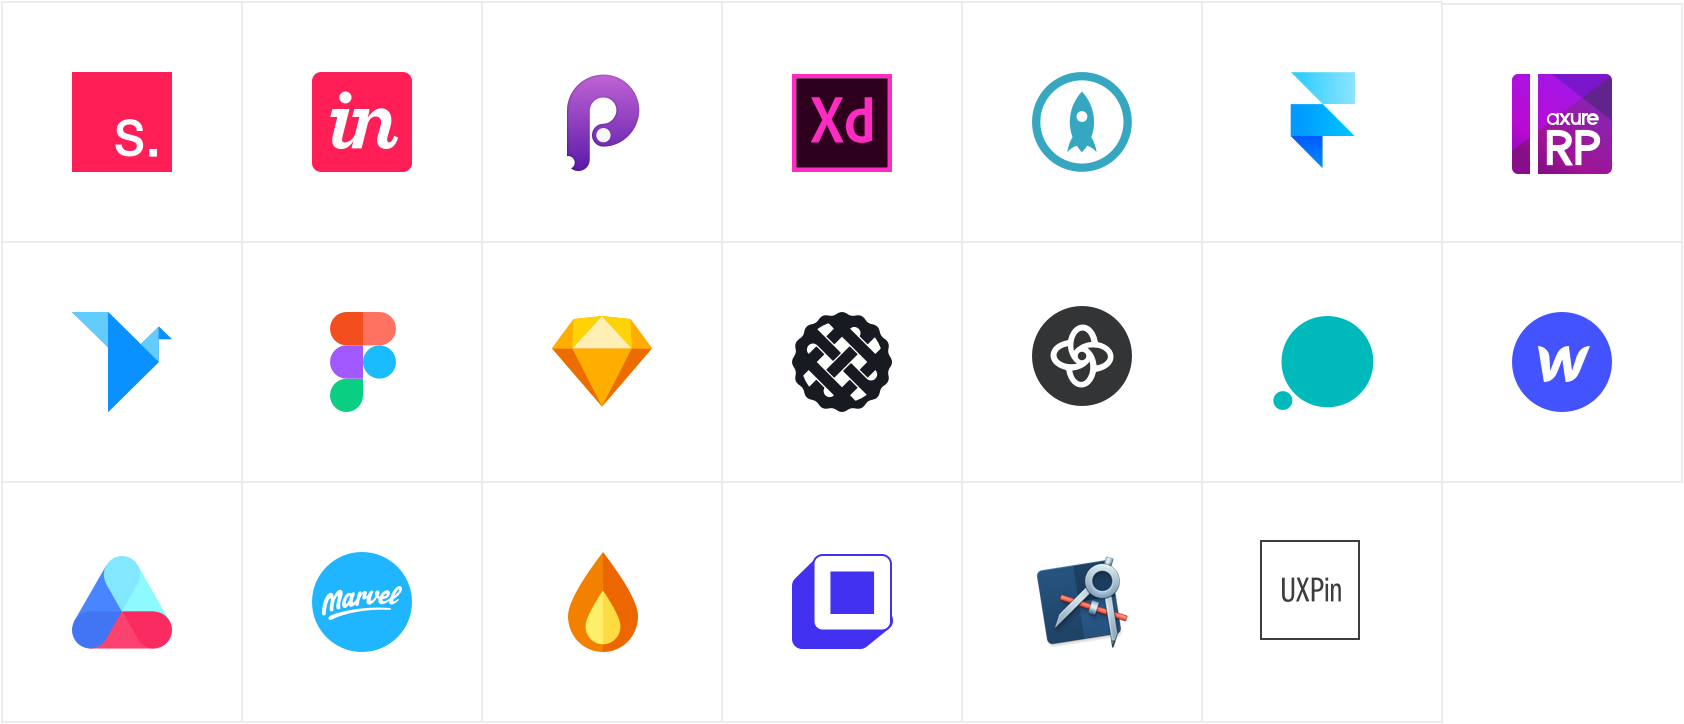 Table of all the application logos, including Invision studio, Adobe XD, Framer and more.